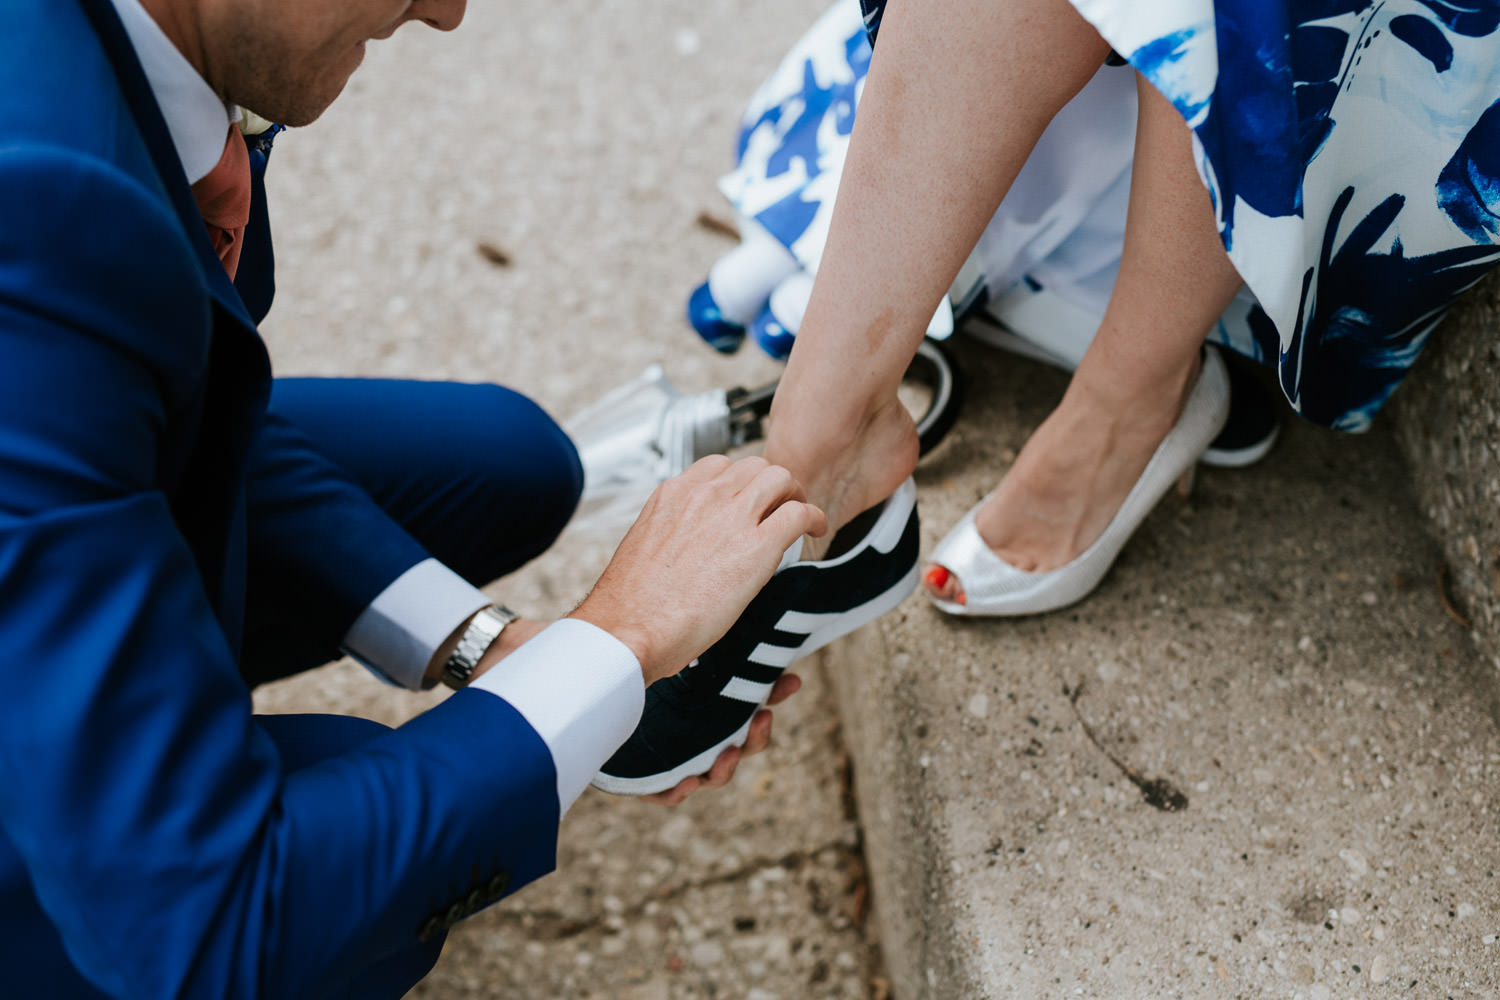 groom help her bride with changing the shoes during the wedding day